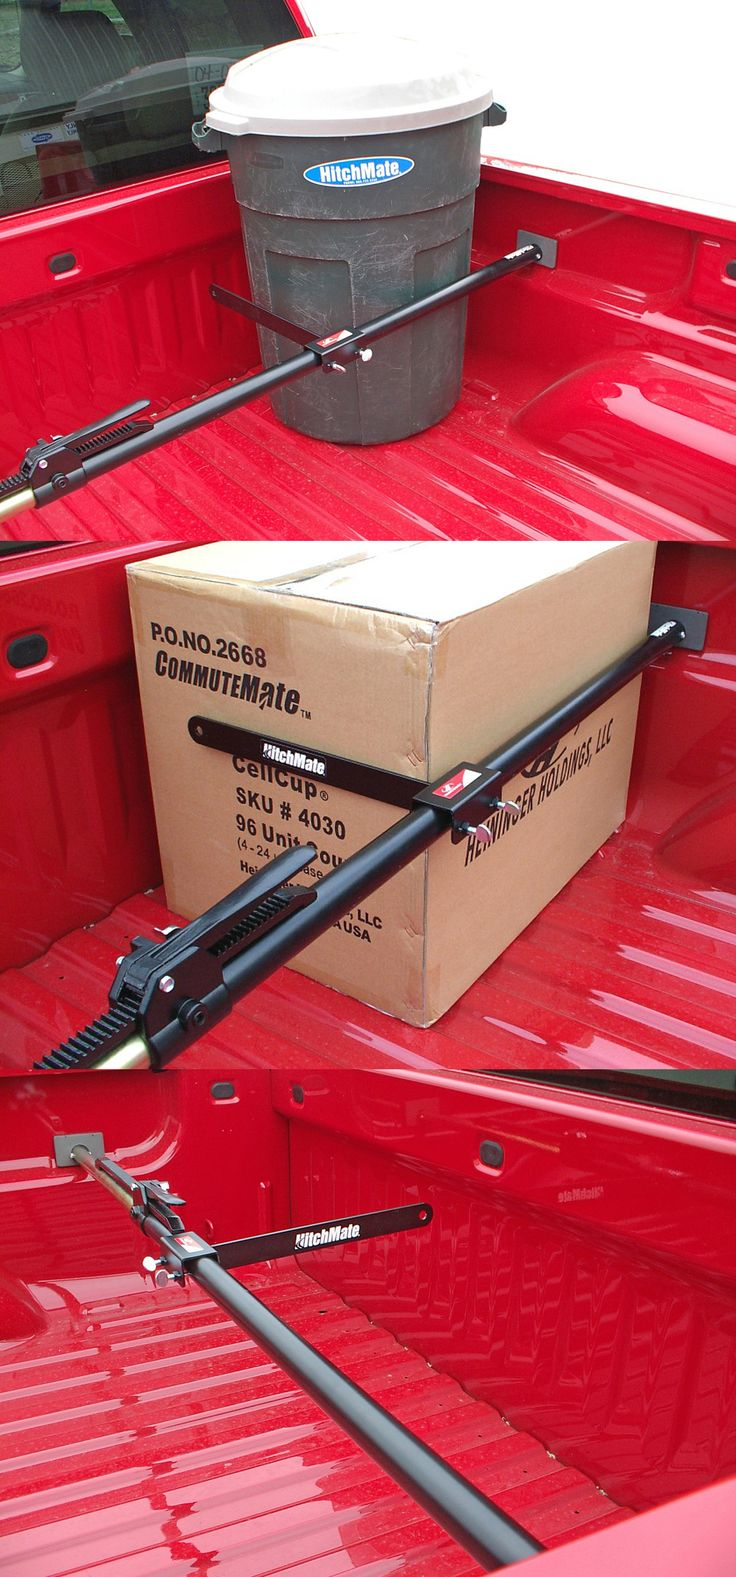 A Necessity When It Comes To Truck Bed Accessories A Cargo Stabilizer Bar And Load Support Compatible With Ford F 150 Trucks A Great Idea For Cargo Control In The Truck Bed